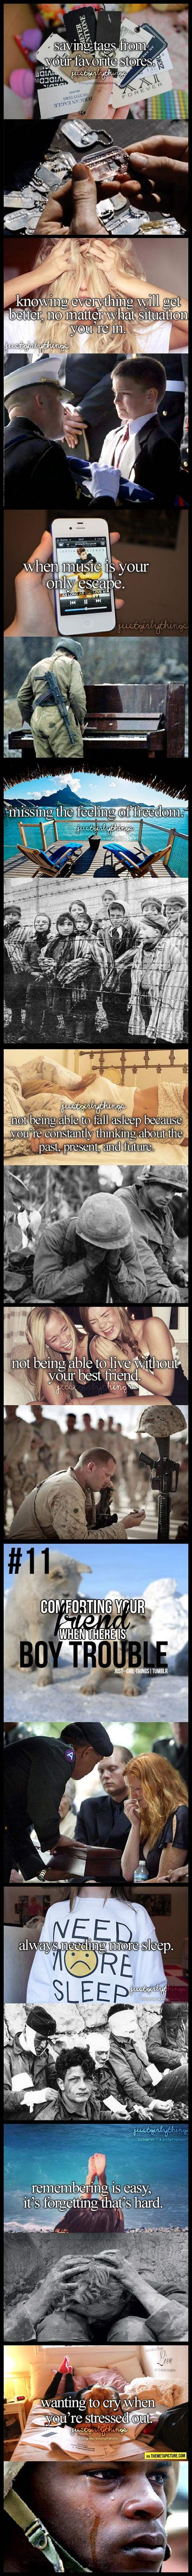 Stop complaining and support the troops!